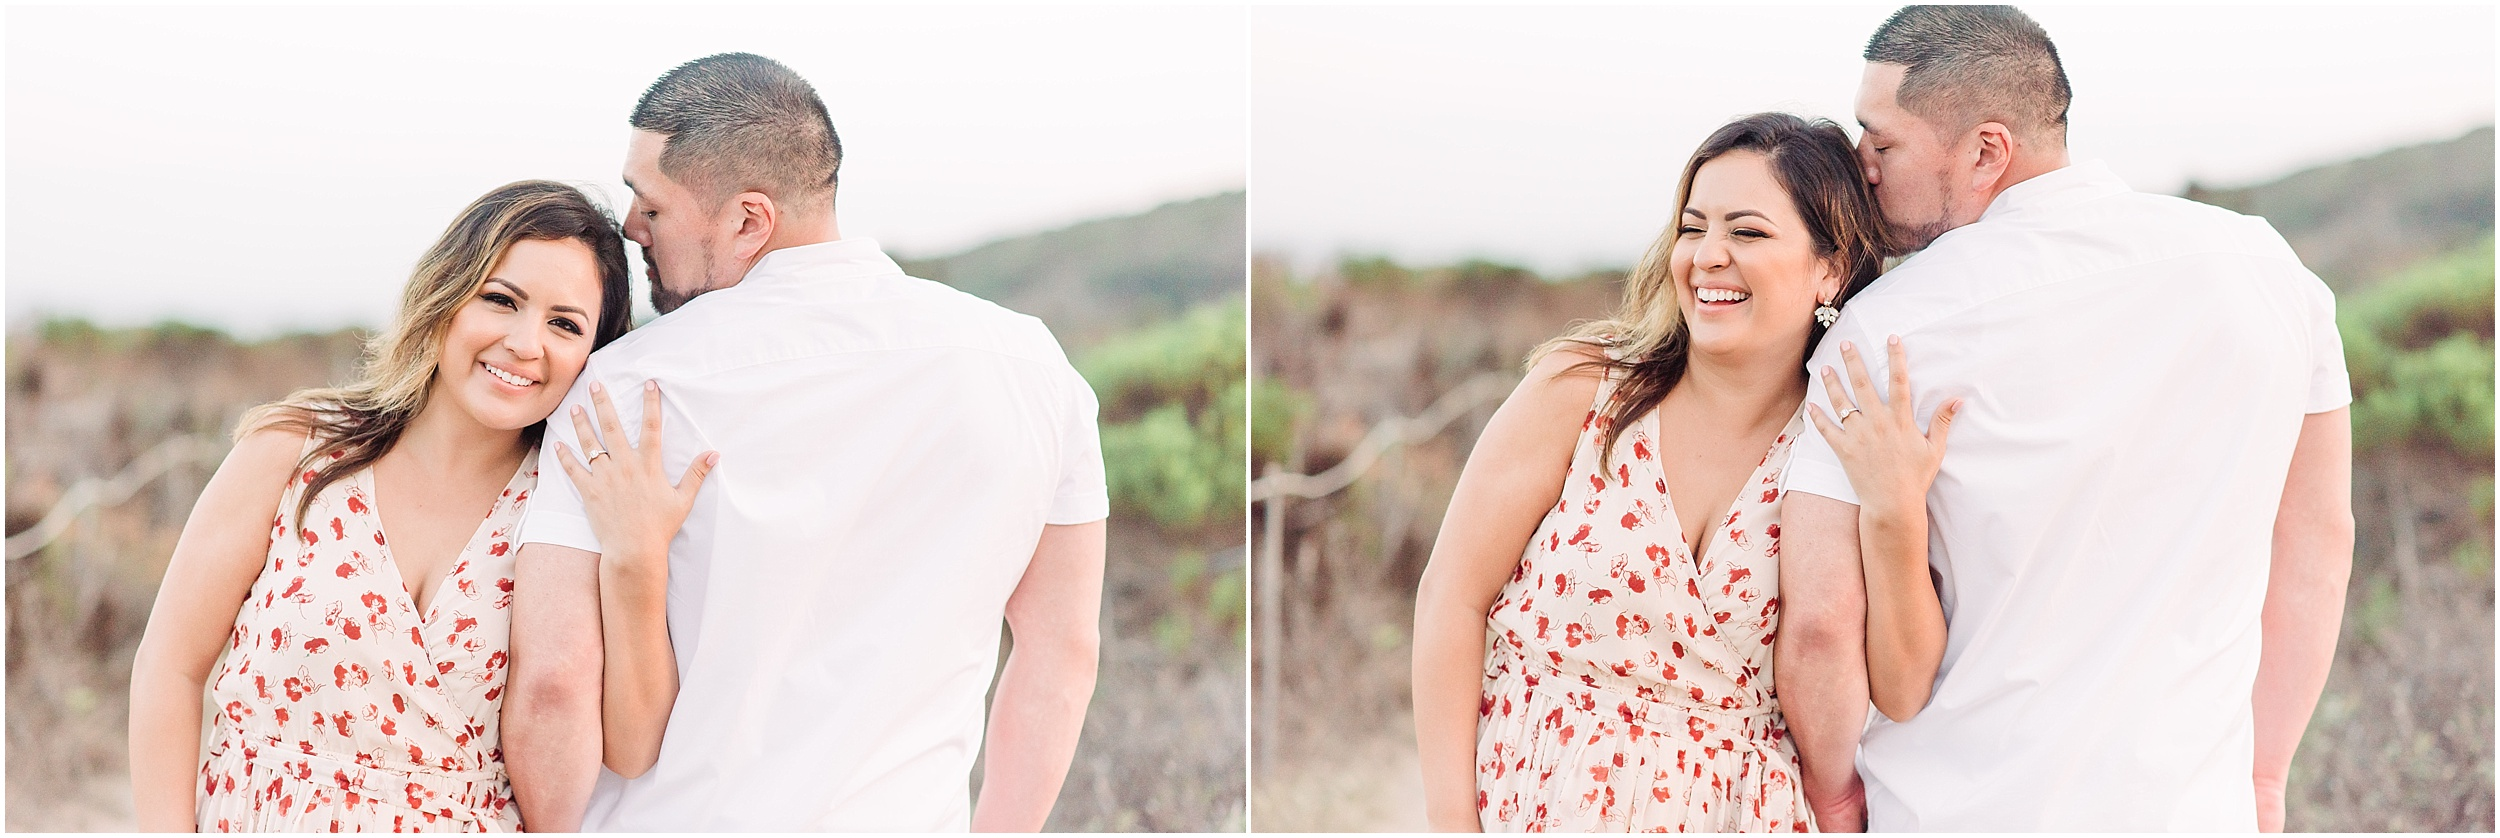 Engagement-Session-in-Malibu-California-Valeria-Gonzalez-Photography-Wedding-and-Portrait-Photographer-Richmond-Virginia-Ventura-California_0014.jpg